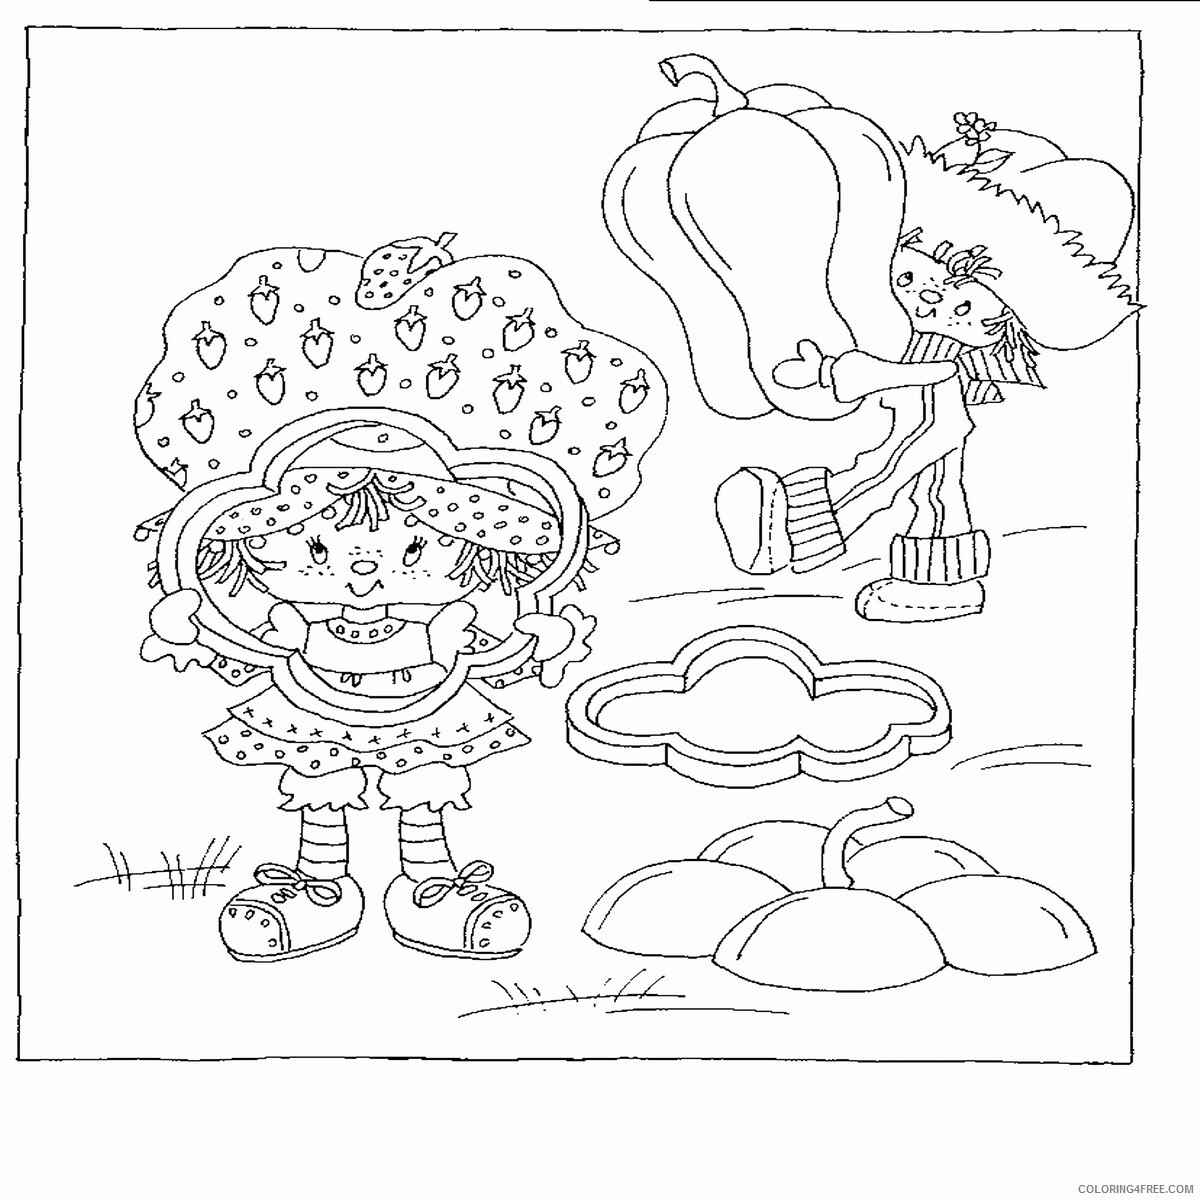 Strawberry Shortcake Coloring Pages TV Film Printable 2020 08109 Coloring4free